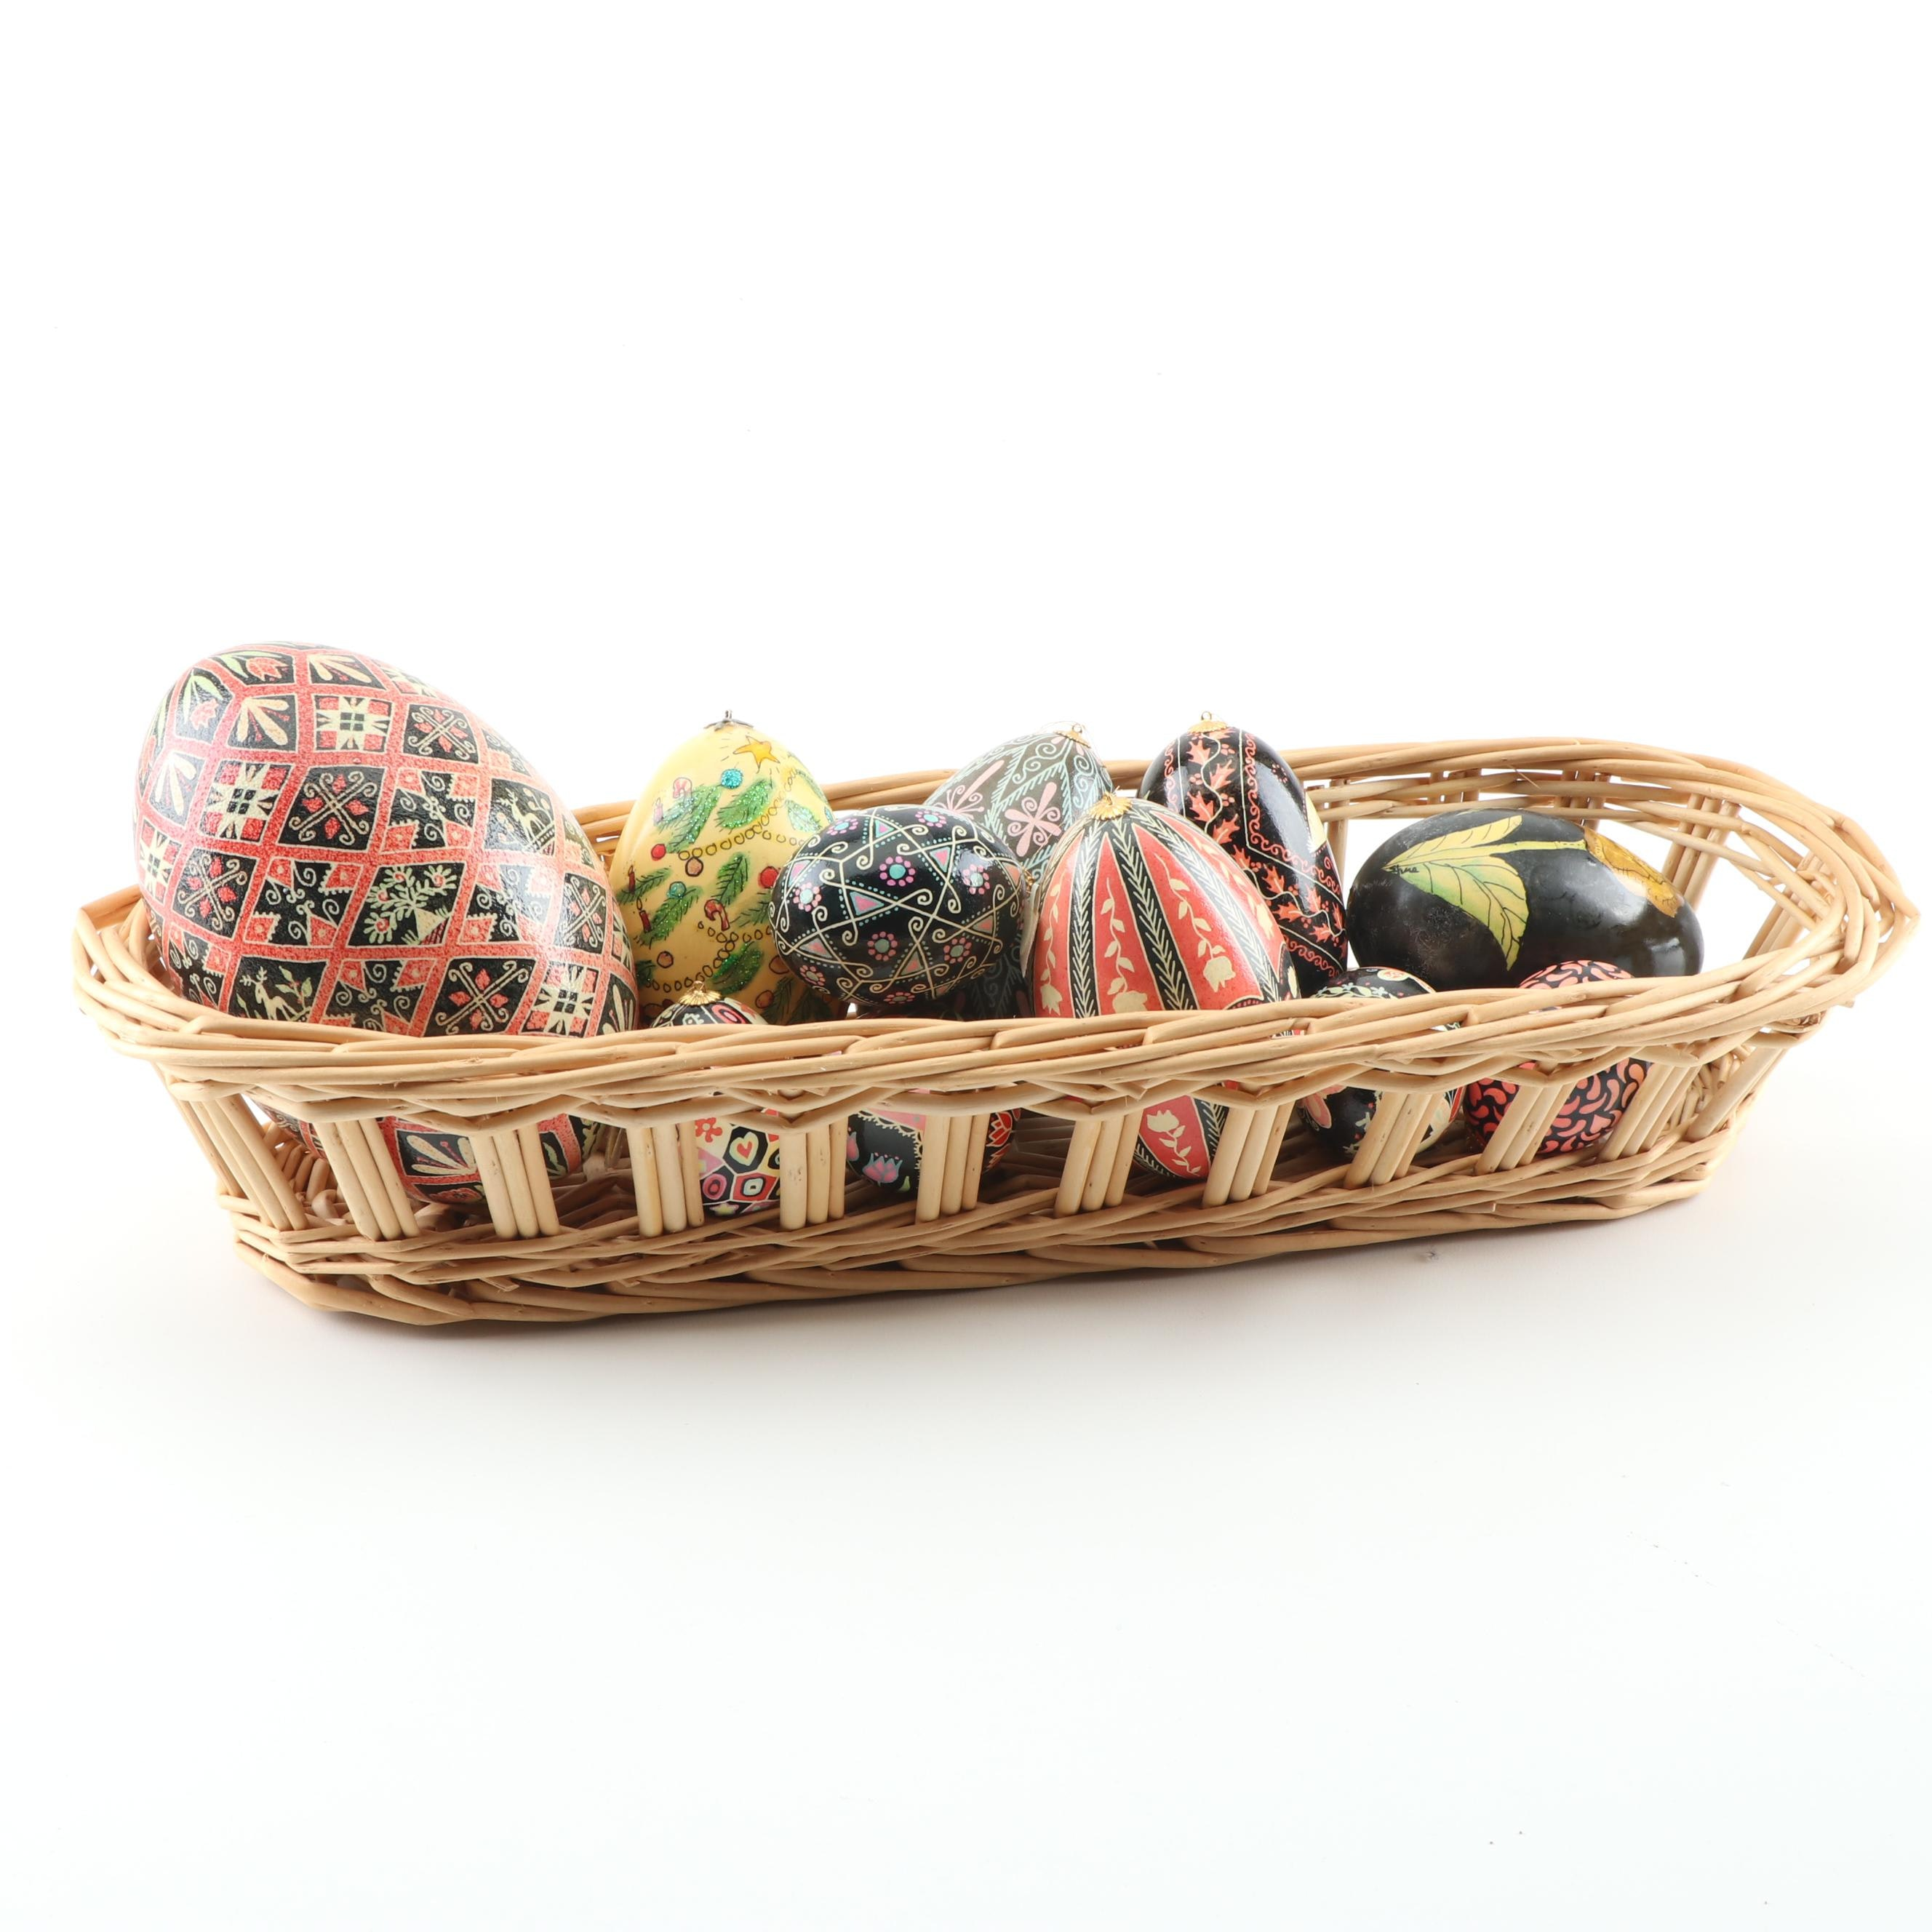 Hand-Painted Pysanka and Ukrainian Style Egg Ornaments and Basket